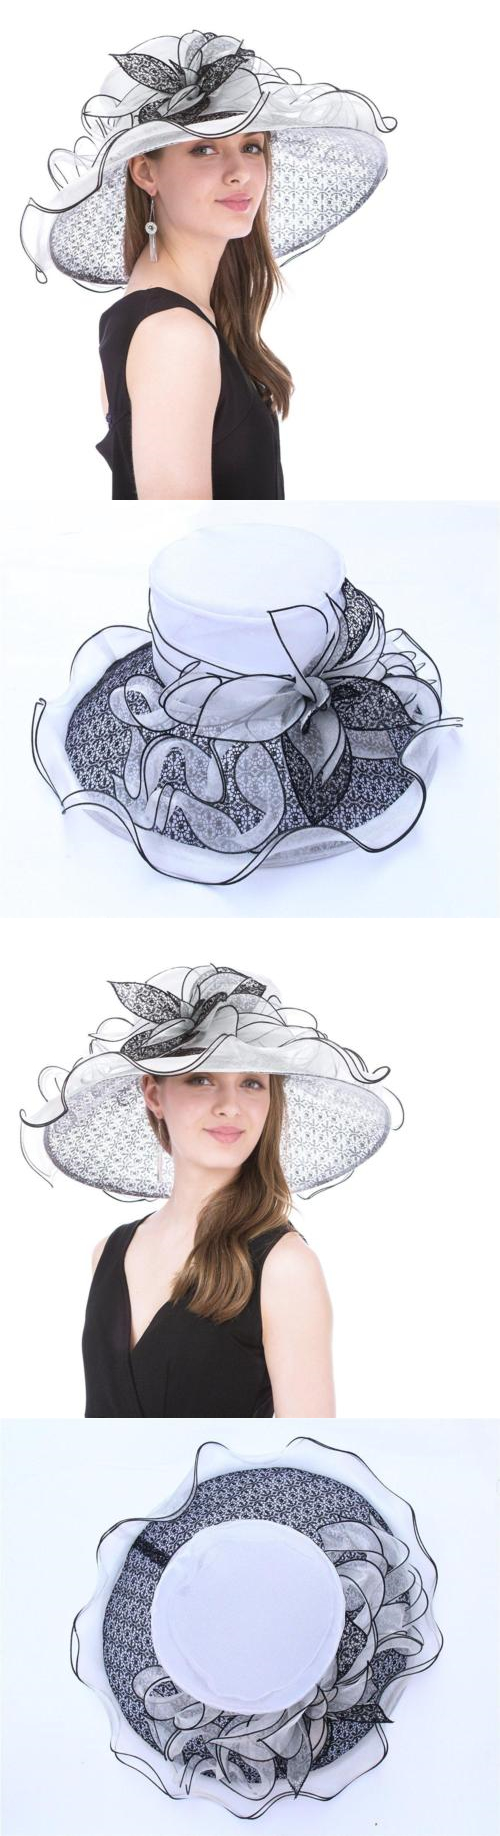 Womens Formal Hats 131476  Saferin Women S Royal Fascinator Organza Church  Kentucky Derby Wedding. fd05b5ecb5f5